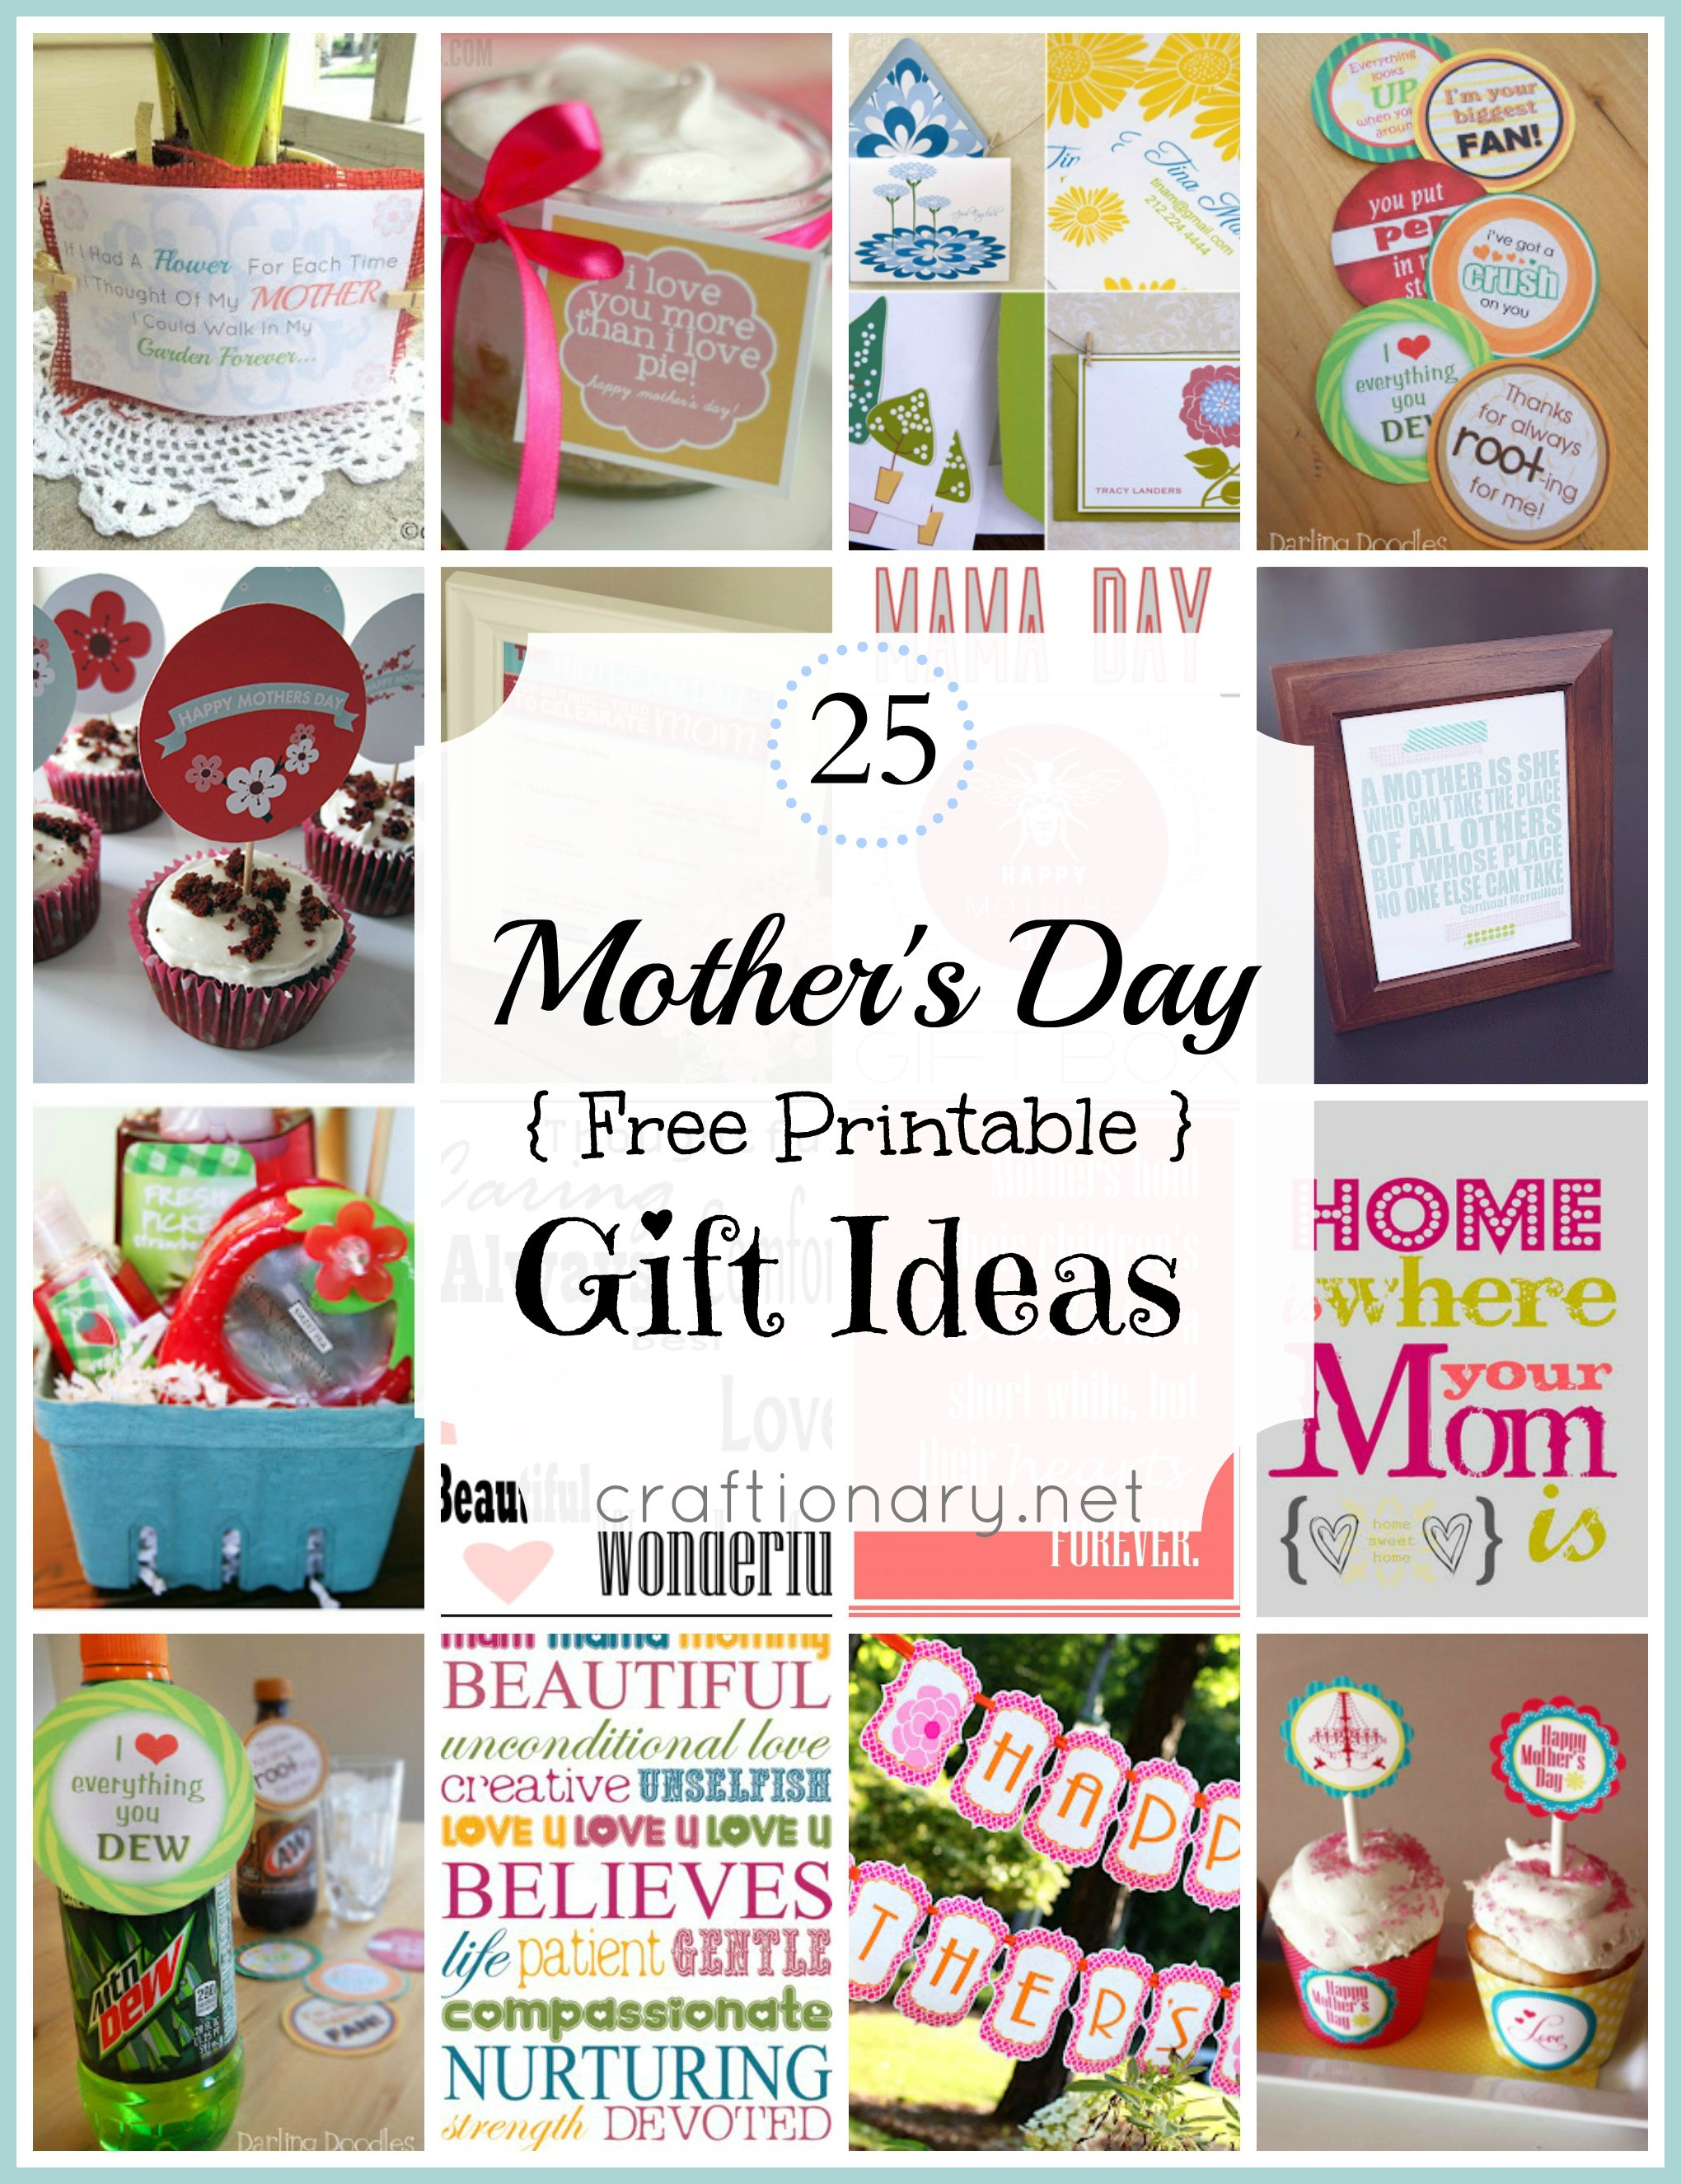 Good Mothers Day Gift Ideas  Craftionary